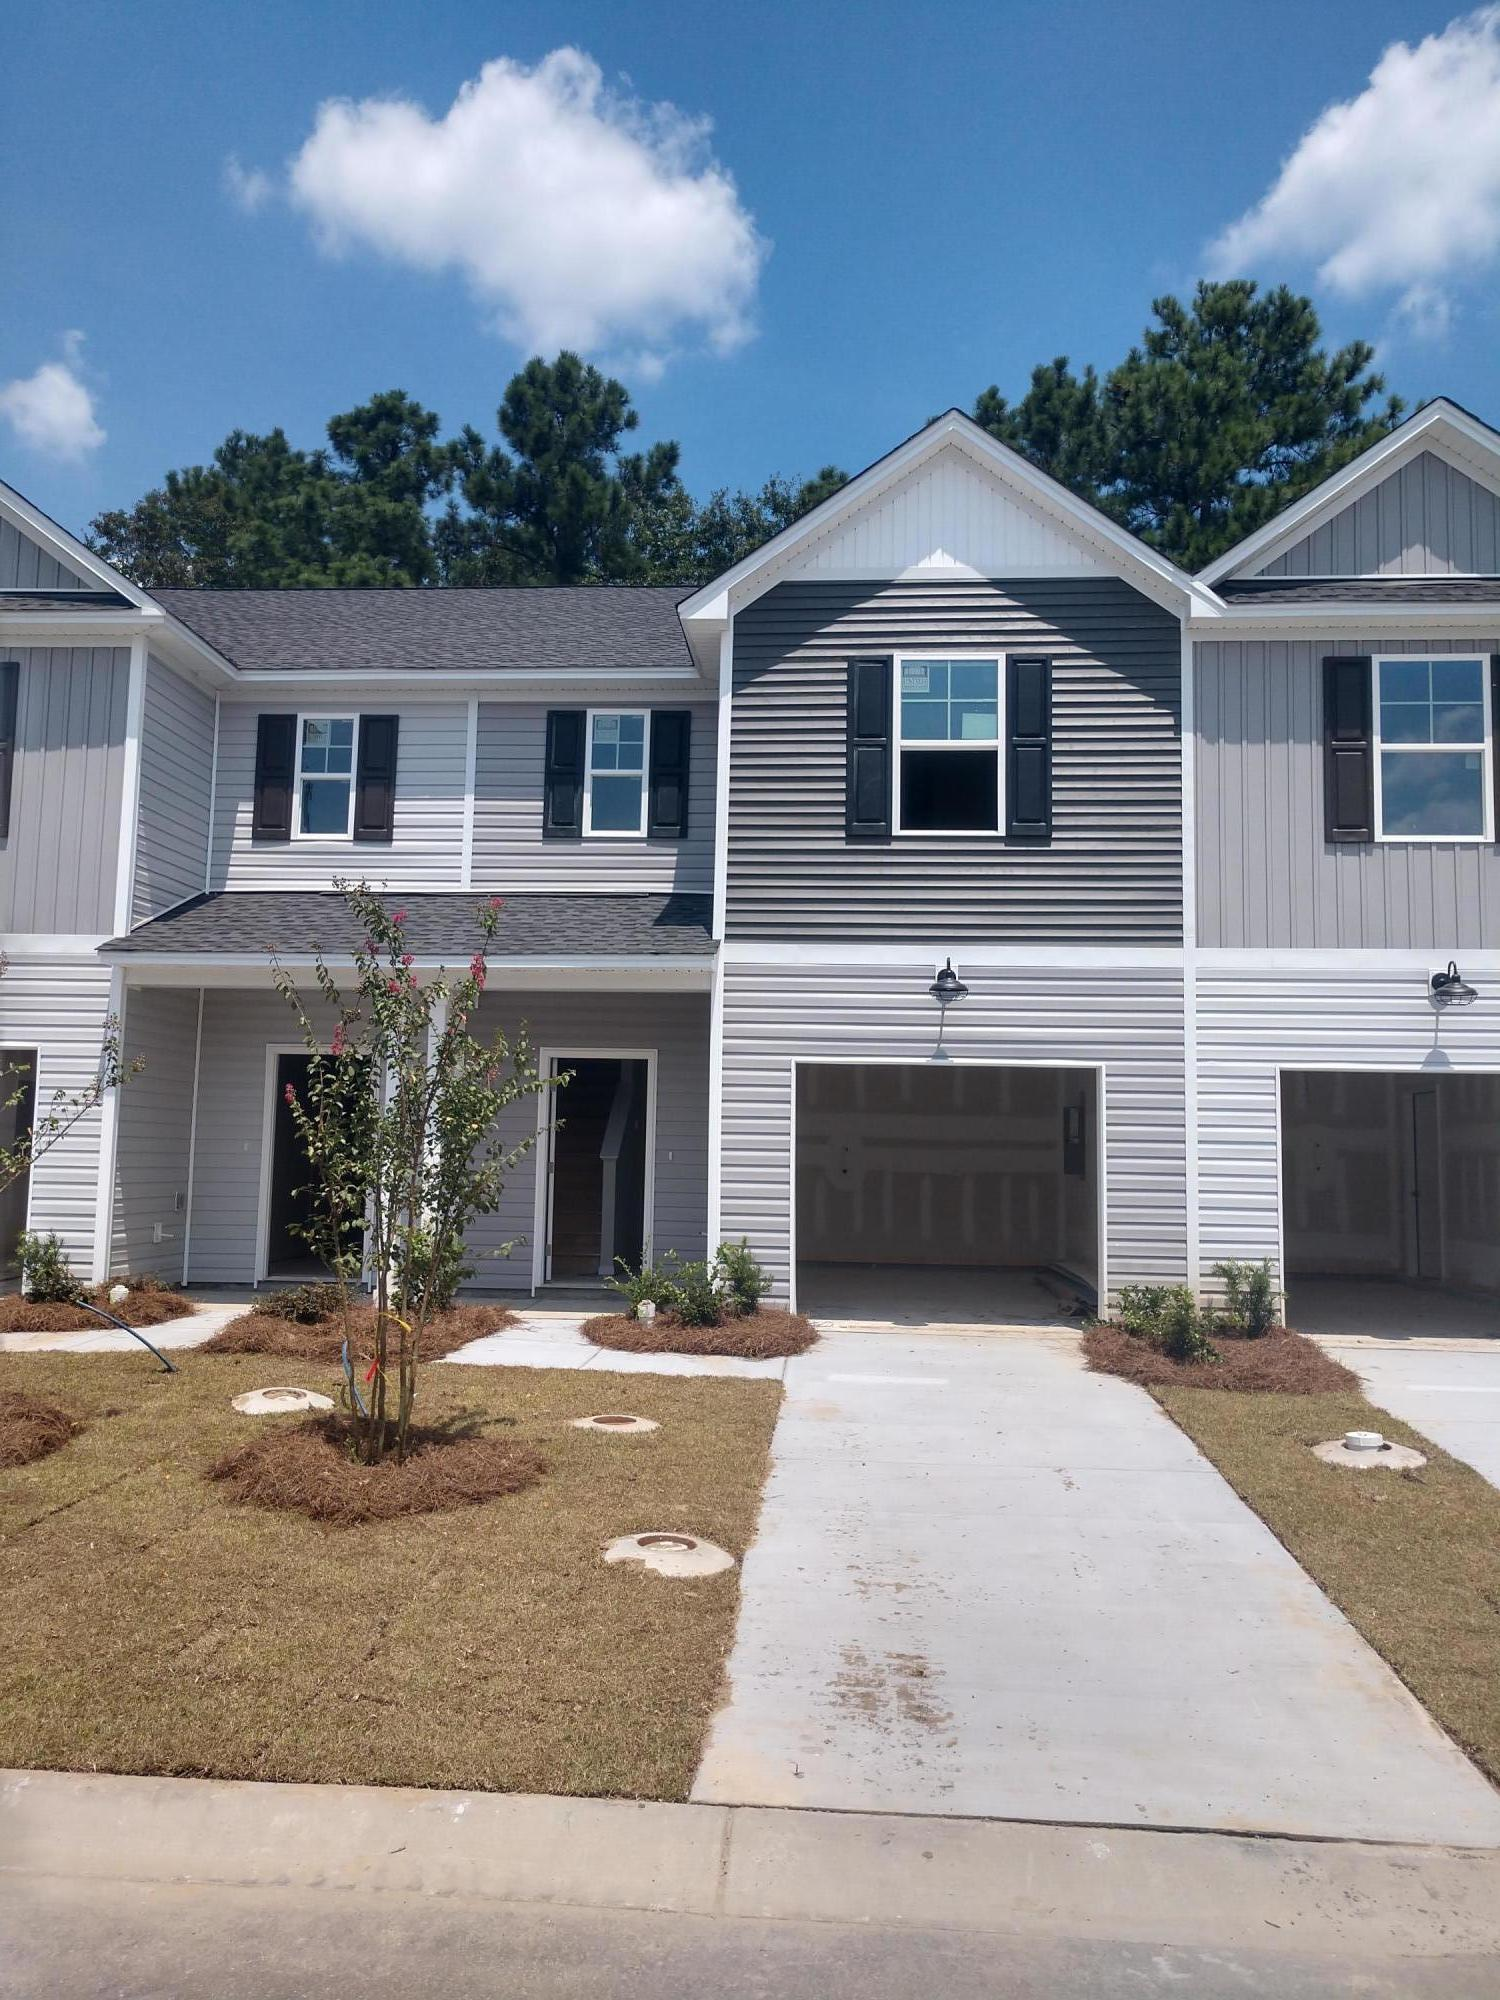 Lakeview Commons Homes For Sale - 174 Buchanan, Goose Creek, SC - 0